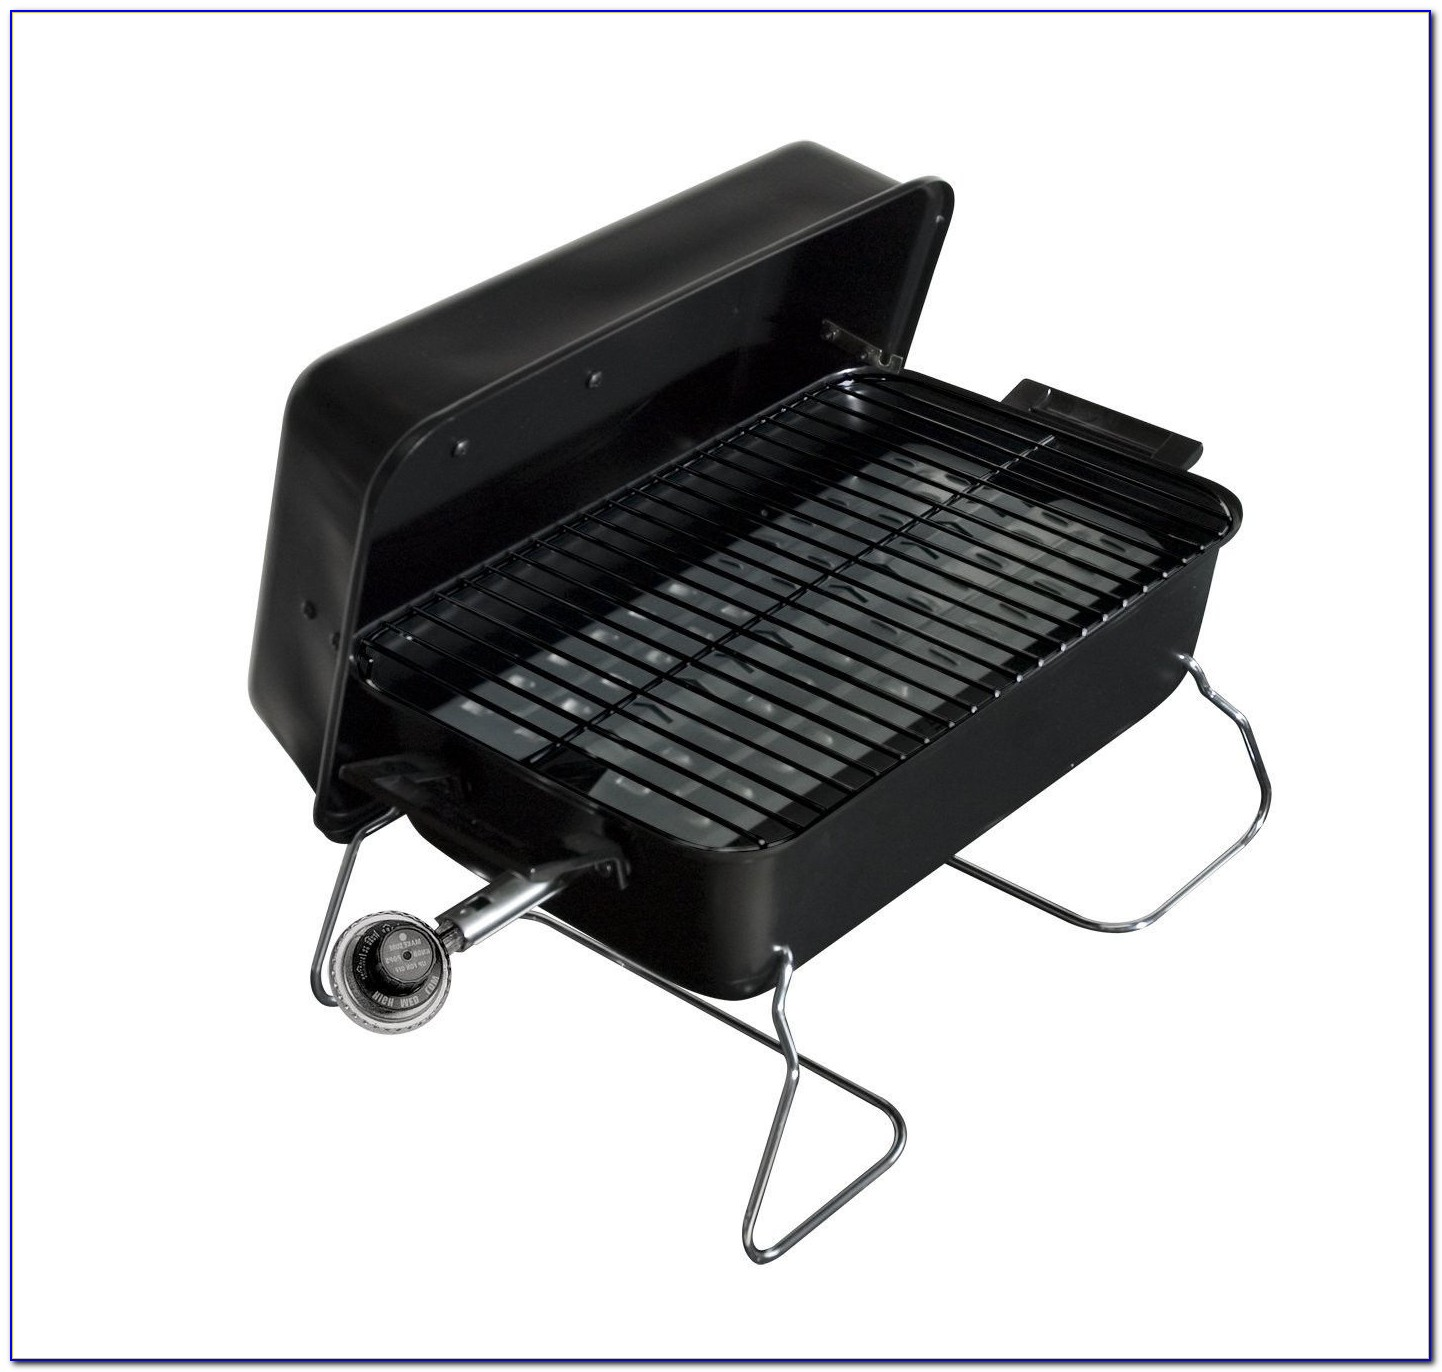 Portable Tabletop Gas Grill